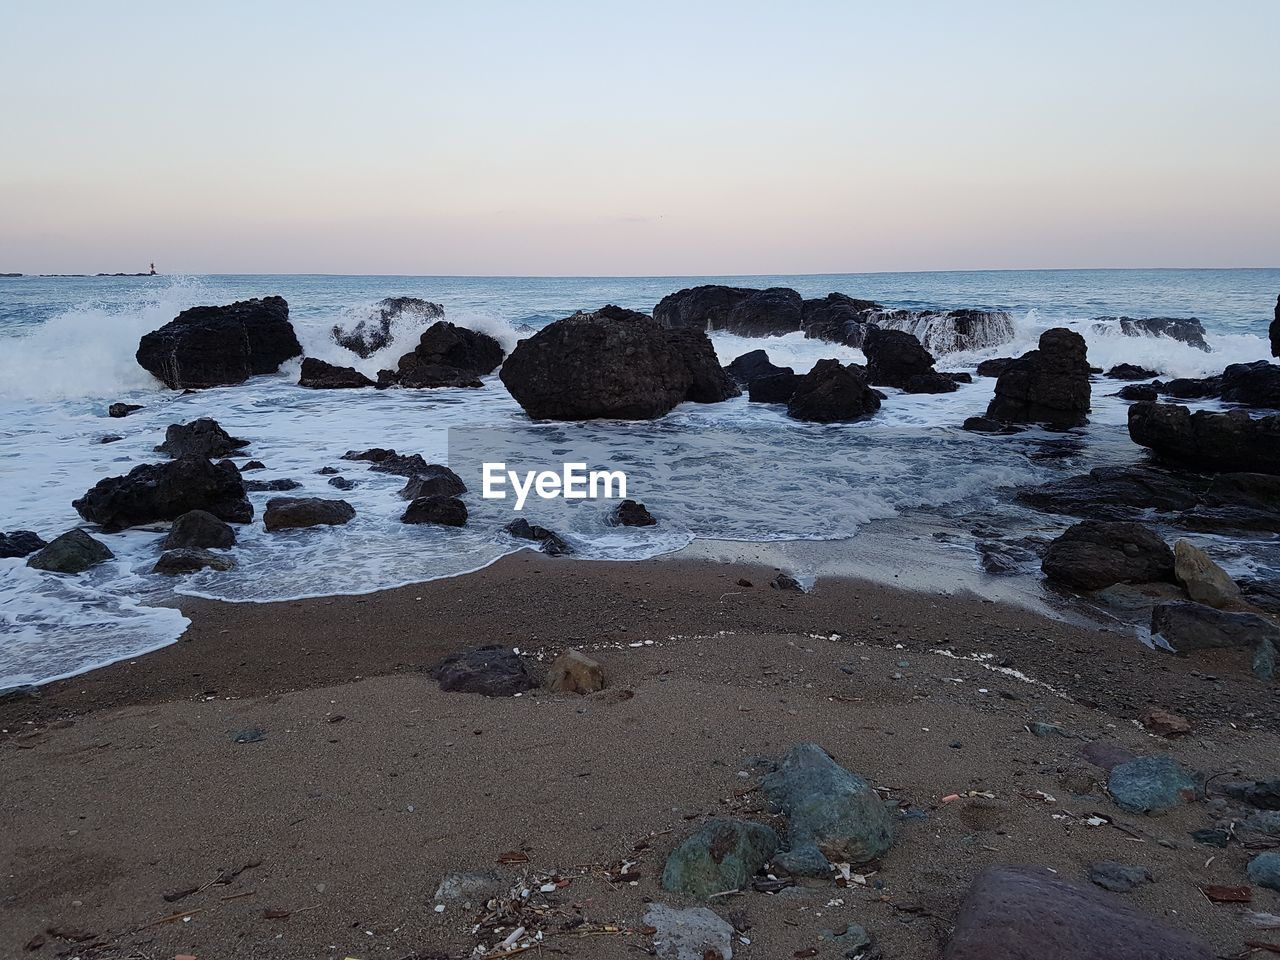 sea, horizon over water, water, nature, beauty in nature, beach, scenics, rock - object, tranquility, tranquil scene, sunset, clear sky, sky, no people, outdoors, sand, wave, day